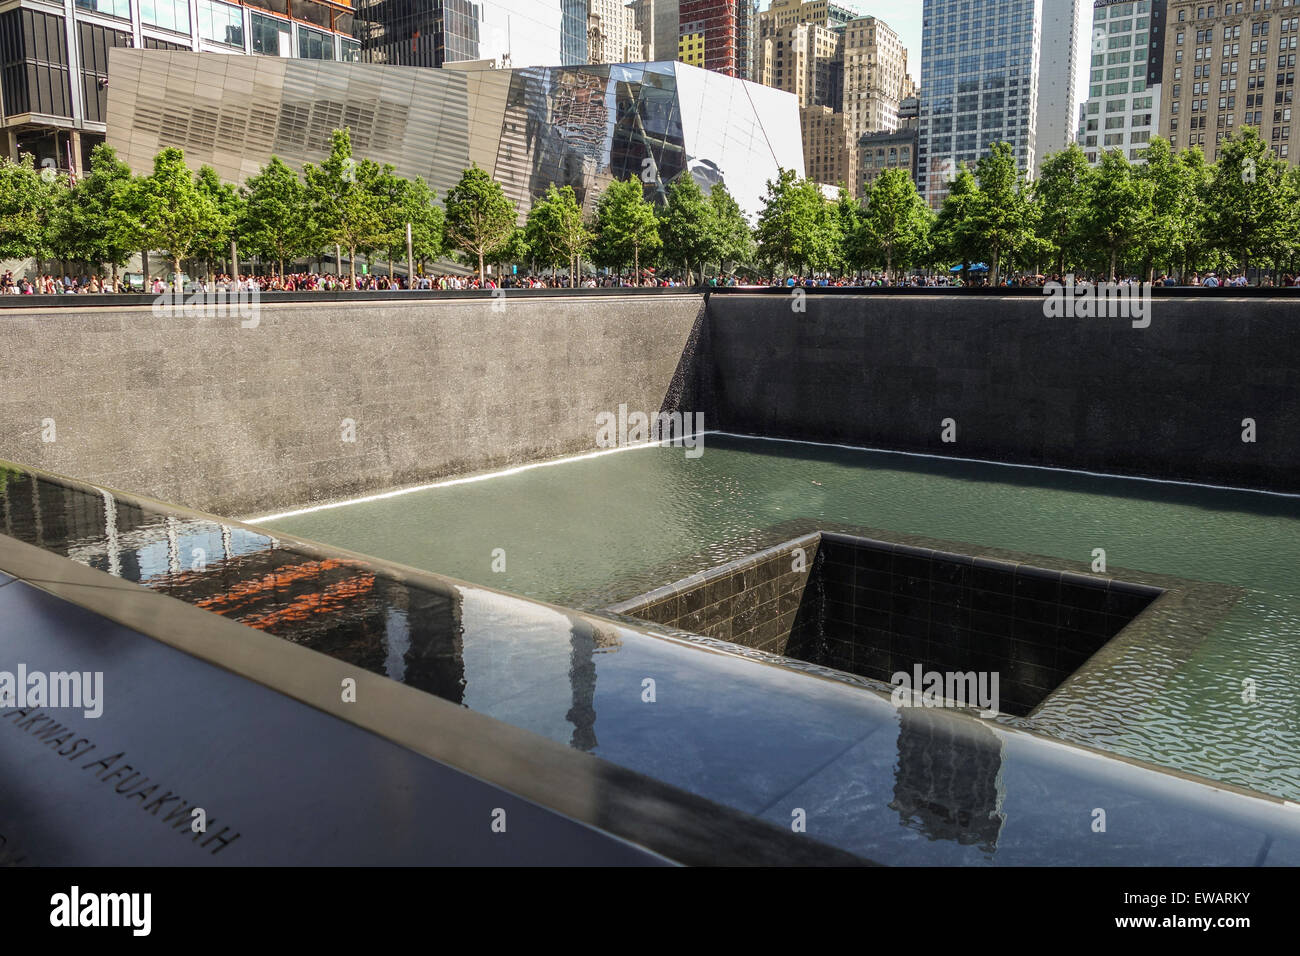 The National September 11 Memorial & Museum, New york city, USA. - Stock Image